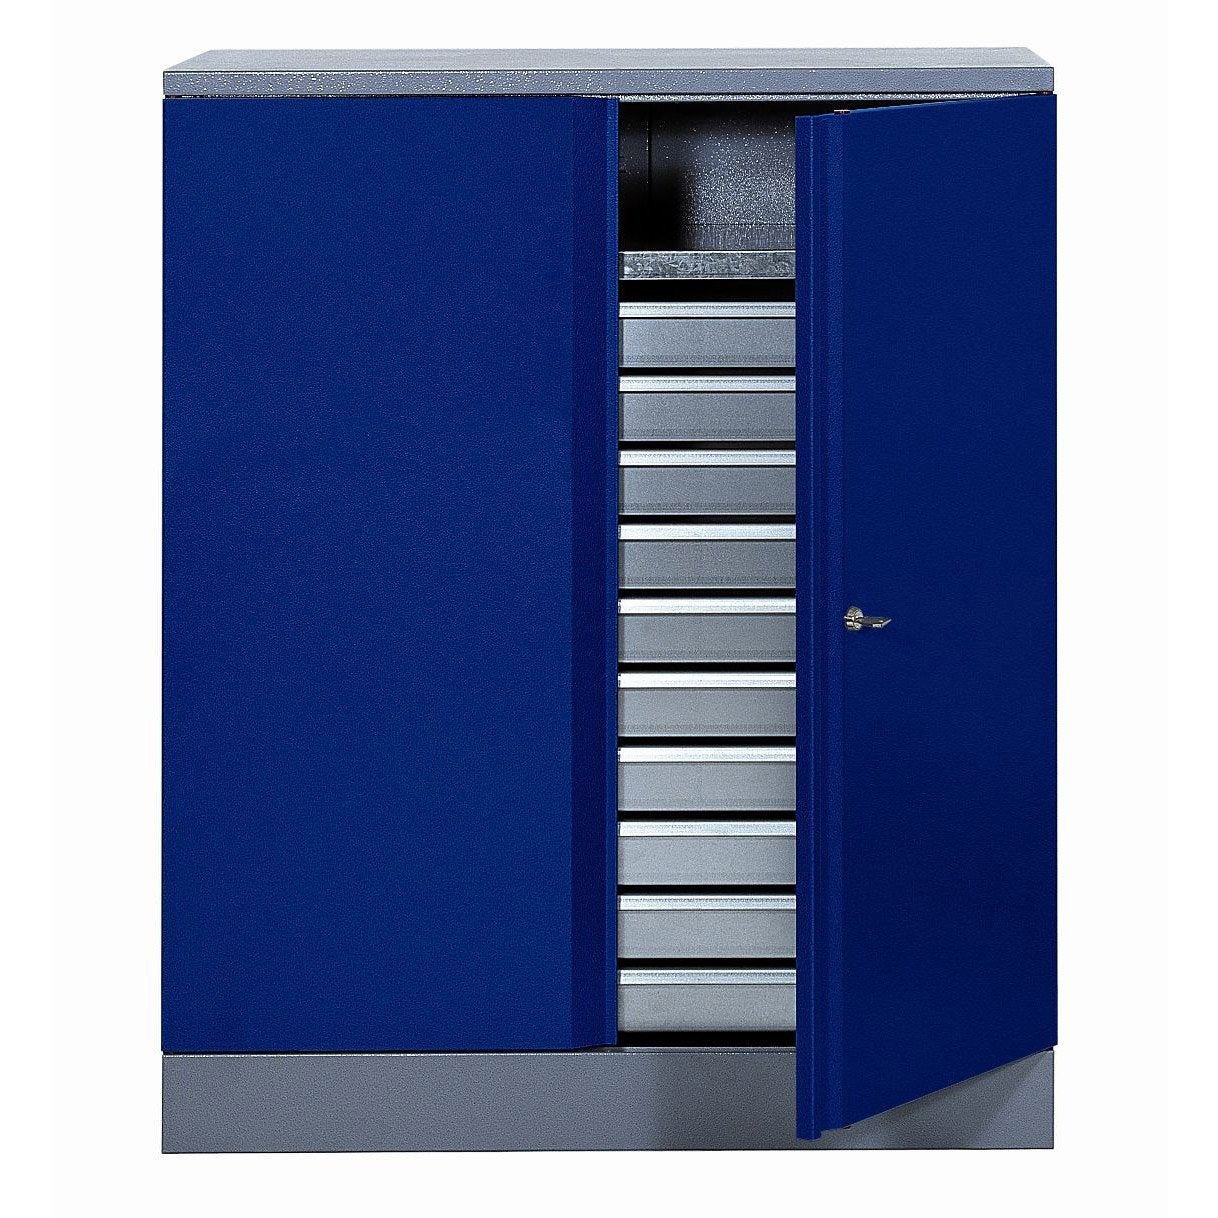 armoire de rangement en m tal bleu kupper 91 cm 1 porte 10 tiroirs leroy merlin. Black Bedroom Furniture Sets. Home Design Ideas